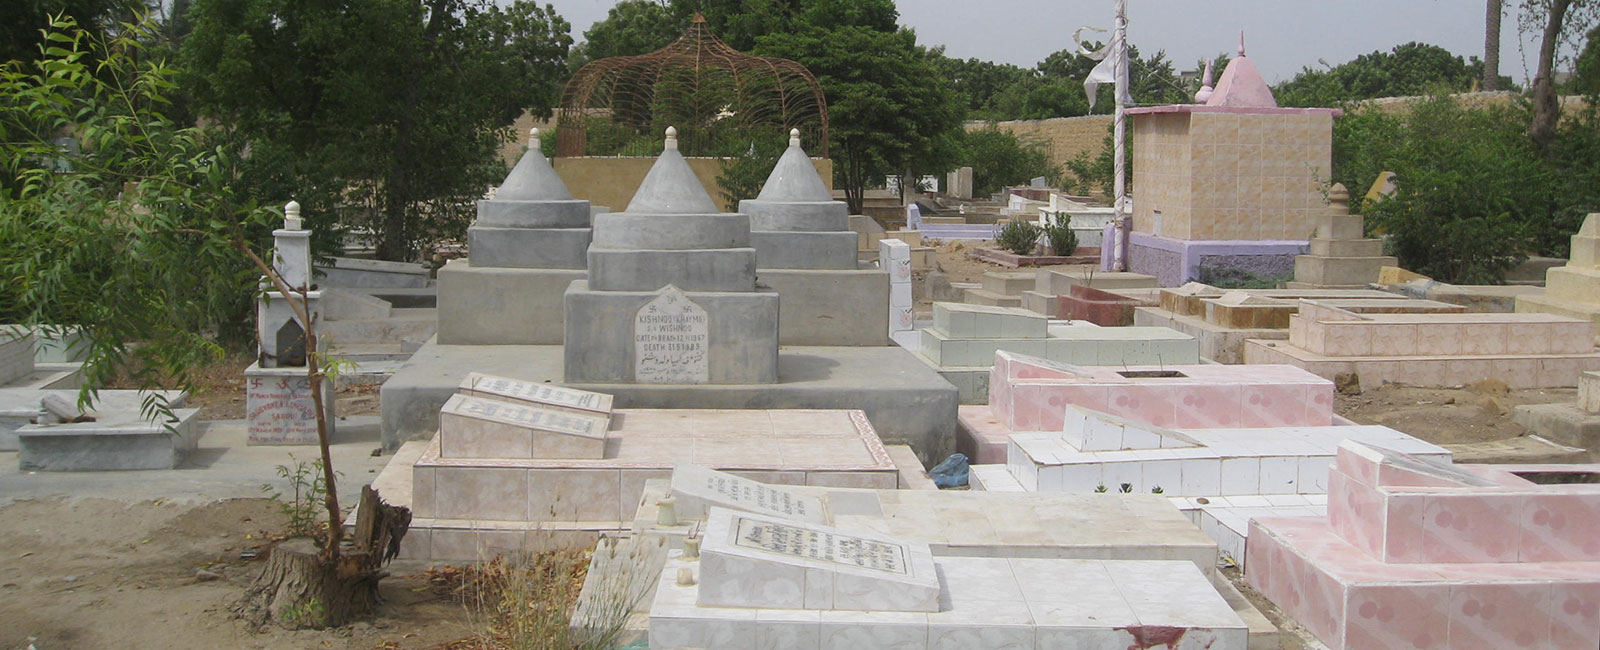 Hindus in Pakistan: Why they choose burial over cremation